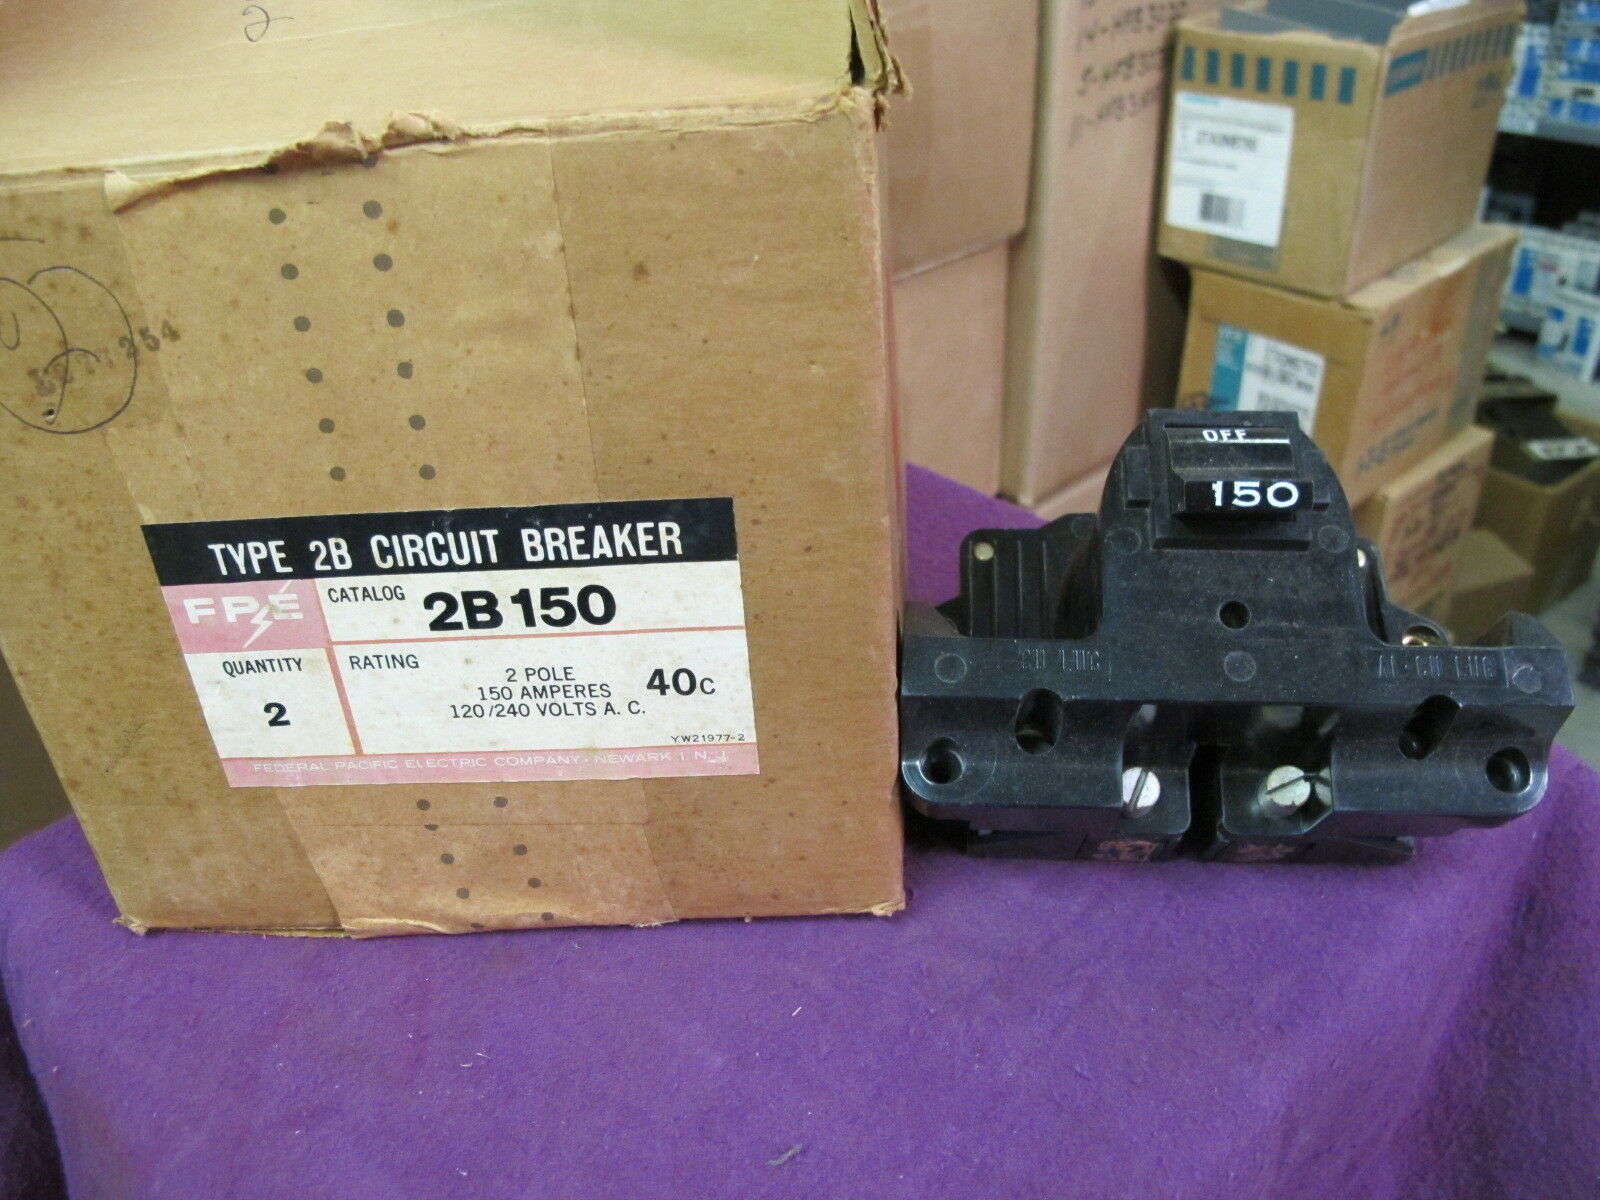 Fpe 2b150, 150 Amp Main Circuit Breaker-